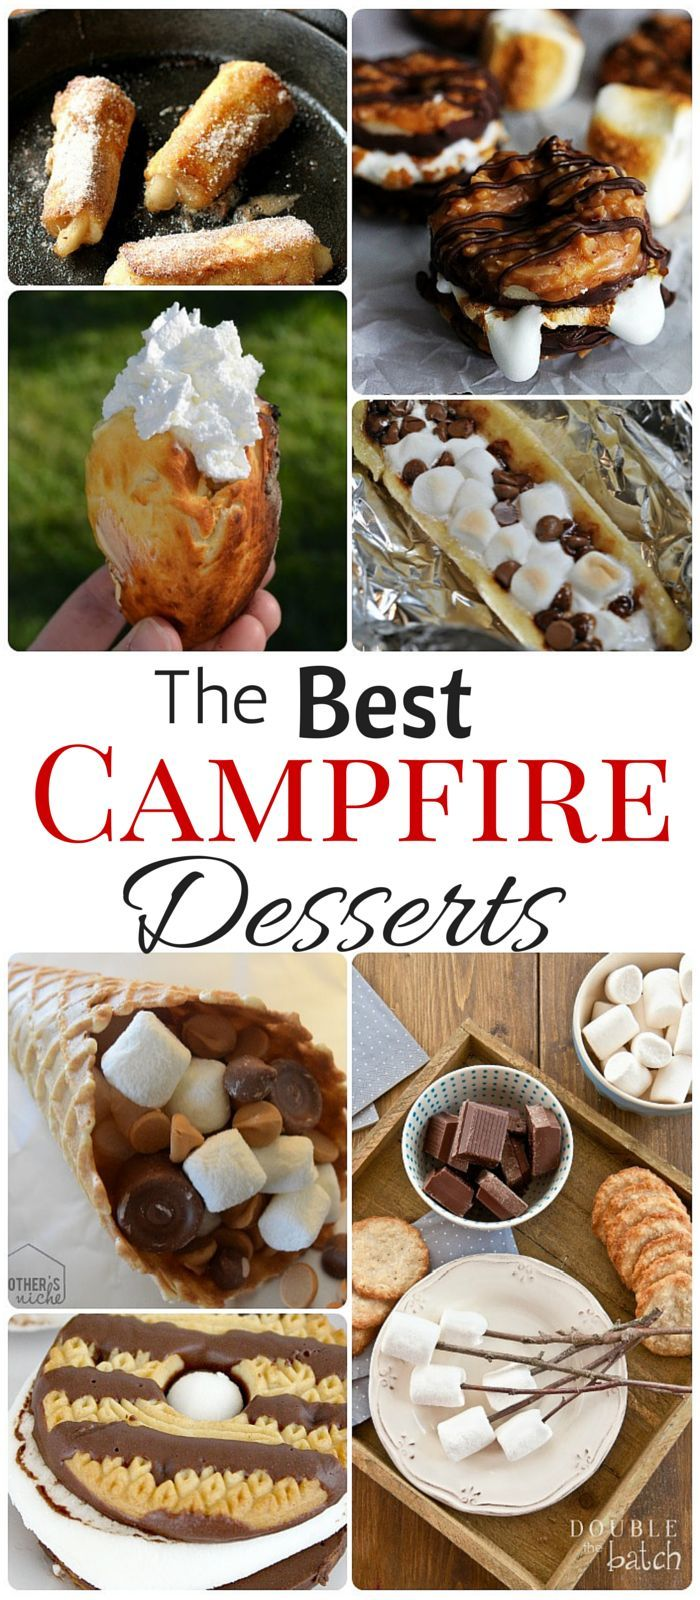 Recipes Nothing Better Than Desserts Around The Campfire Pinning This For My Next Camping Trip